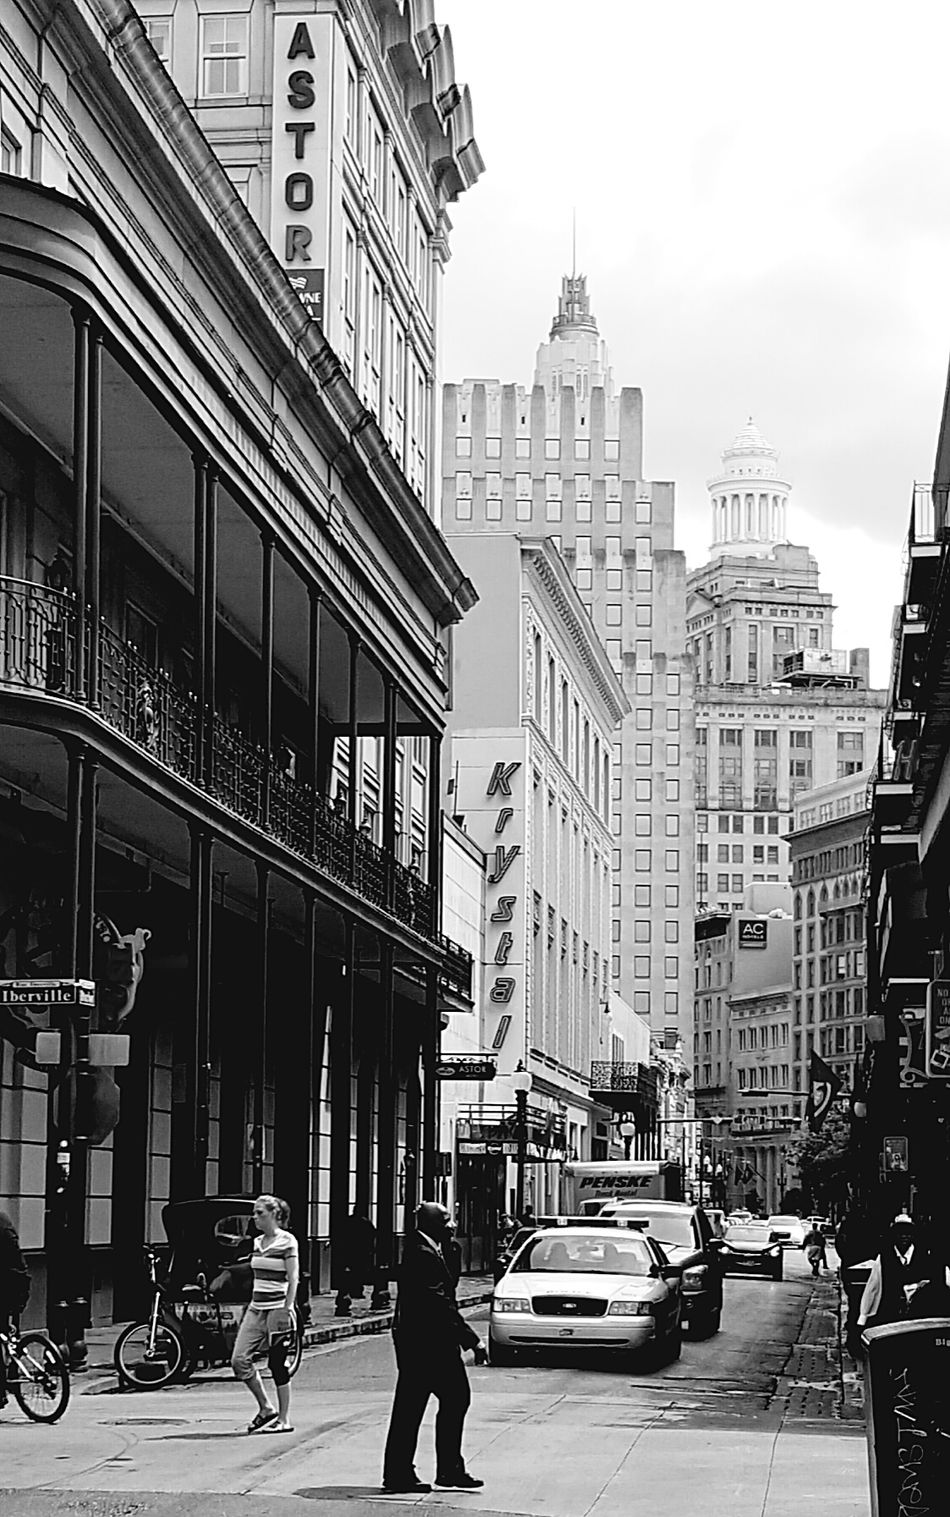 A Busy NOLA Street. Cityscape Citylife Cityspaces City Street New Orleans Louisiana Busy Street Buildings And Sky Busy People Busy Life Black And White Photography Black And White Street Photography